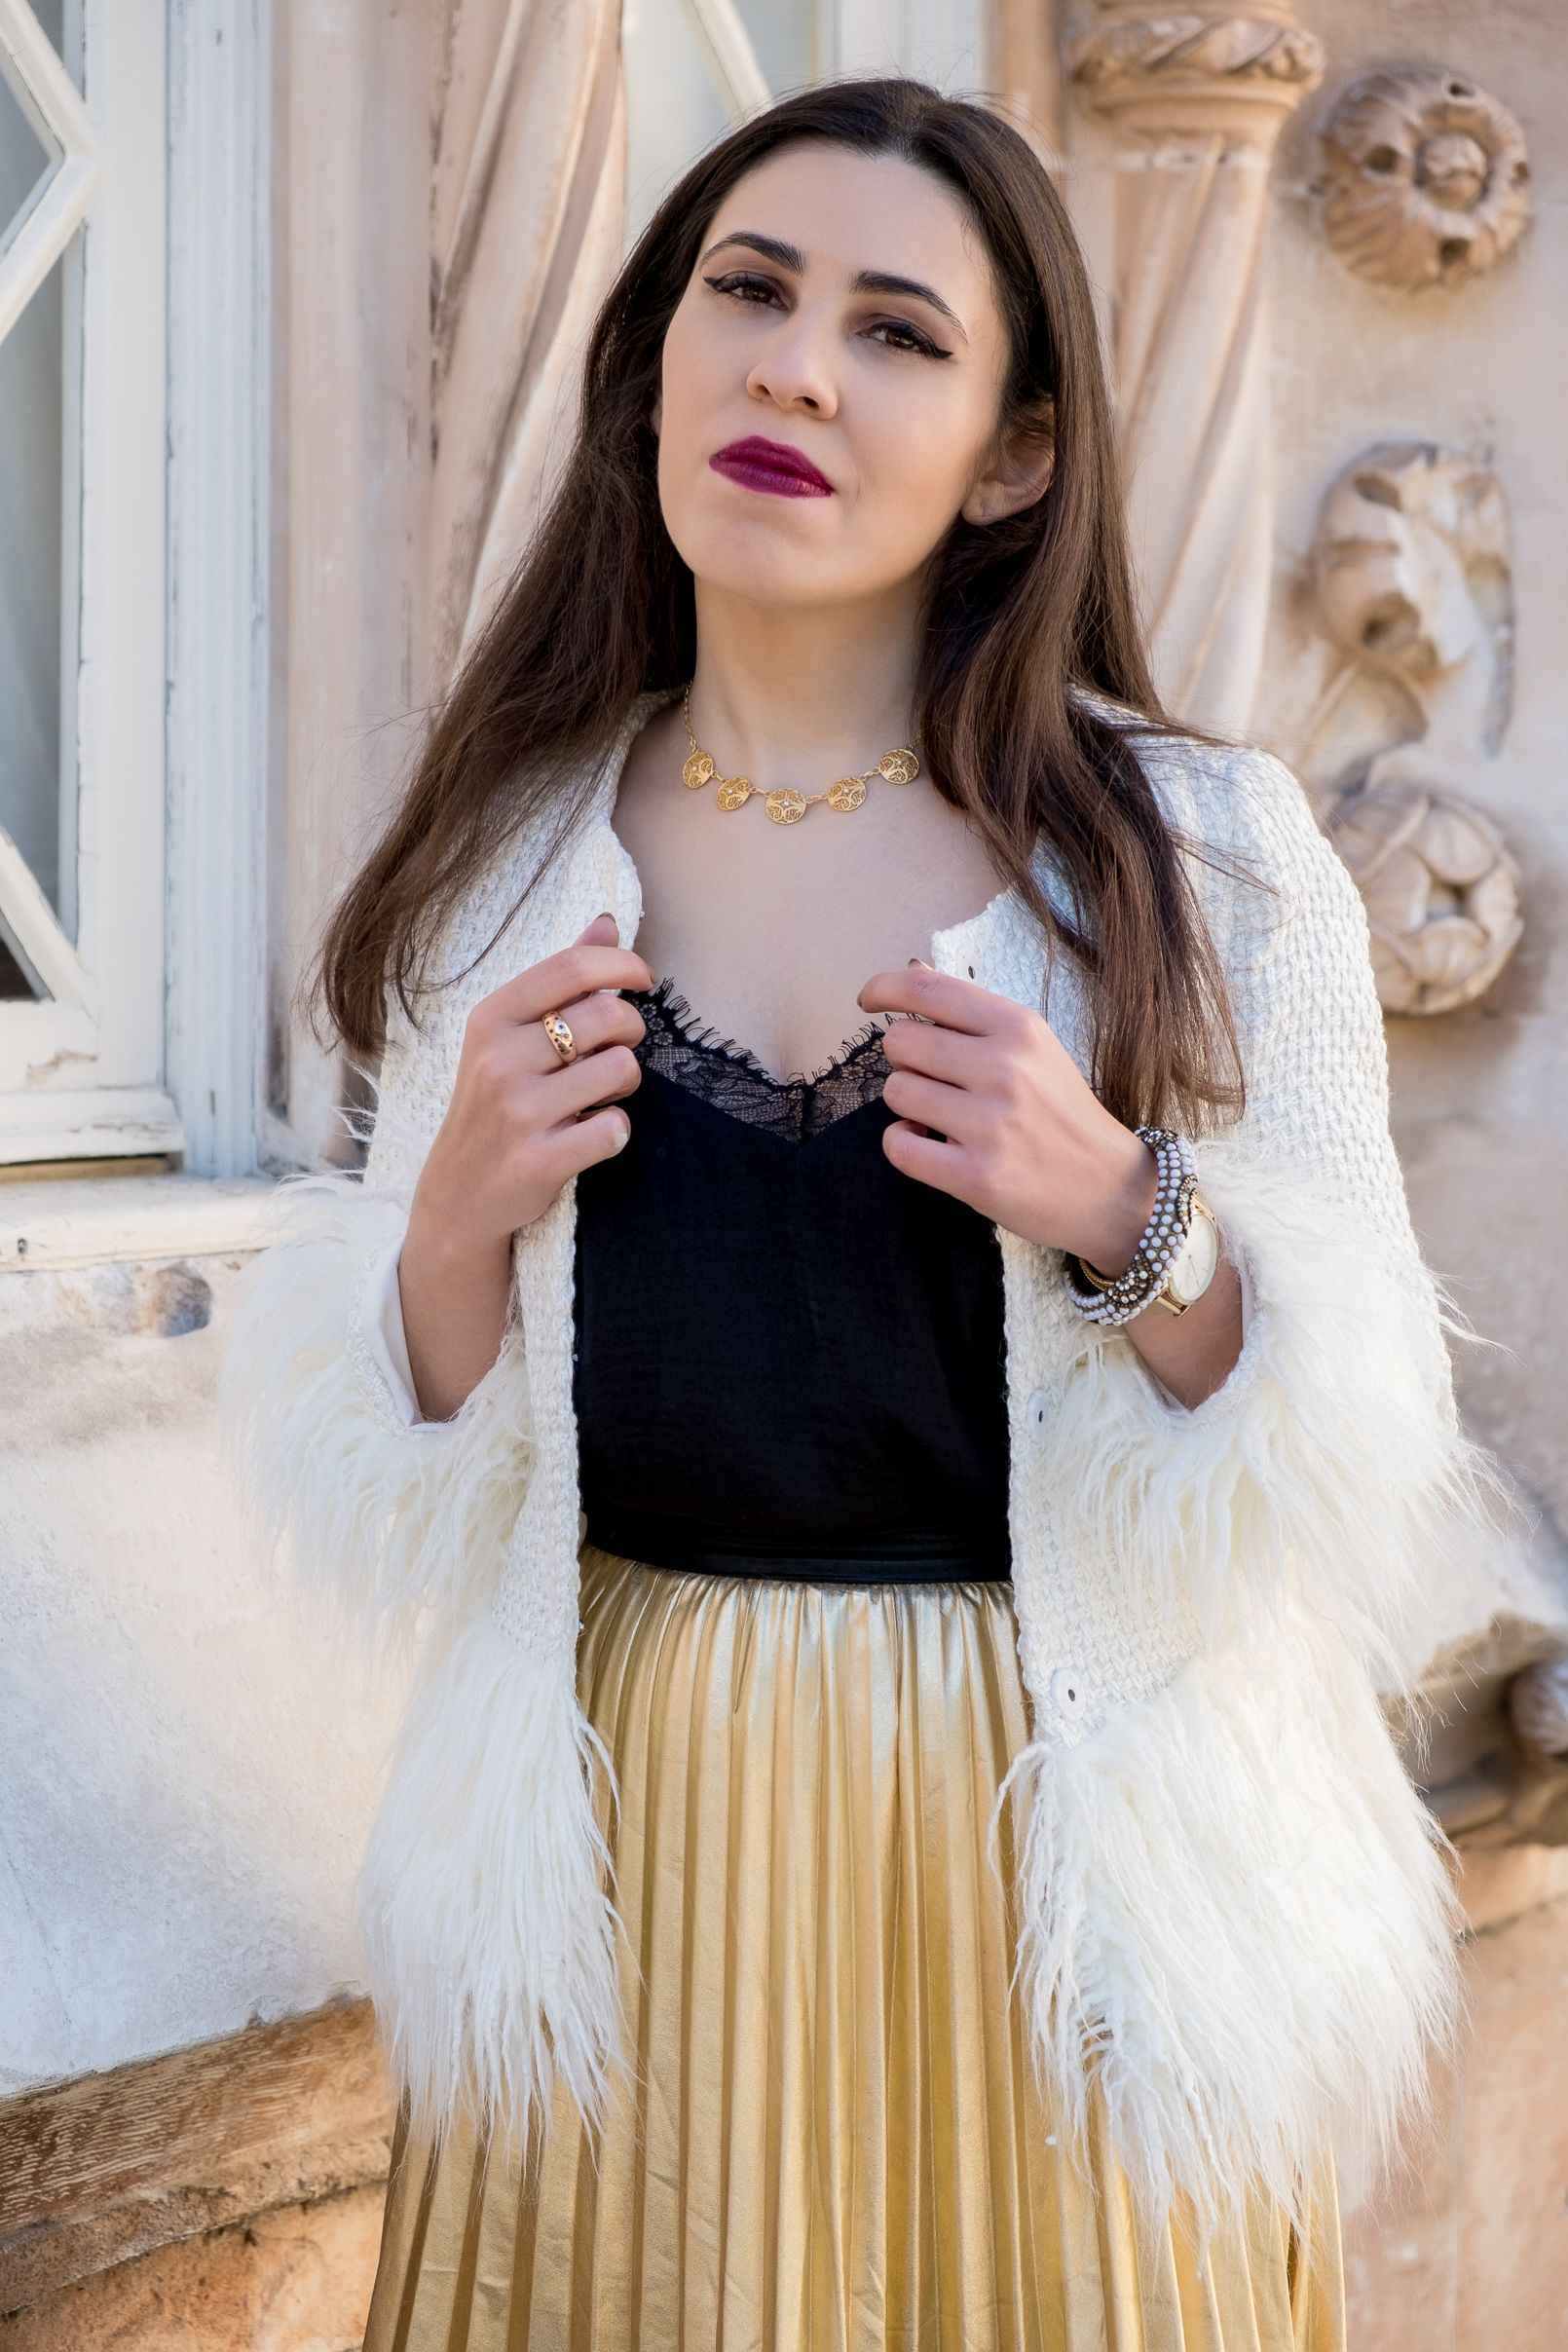 31369ba697 What to wear on christmas? - #accesorize #black #bracelet #Chic #